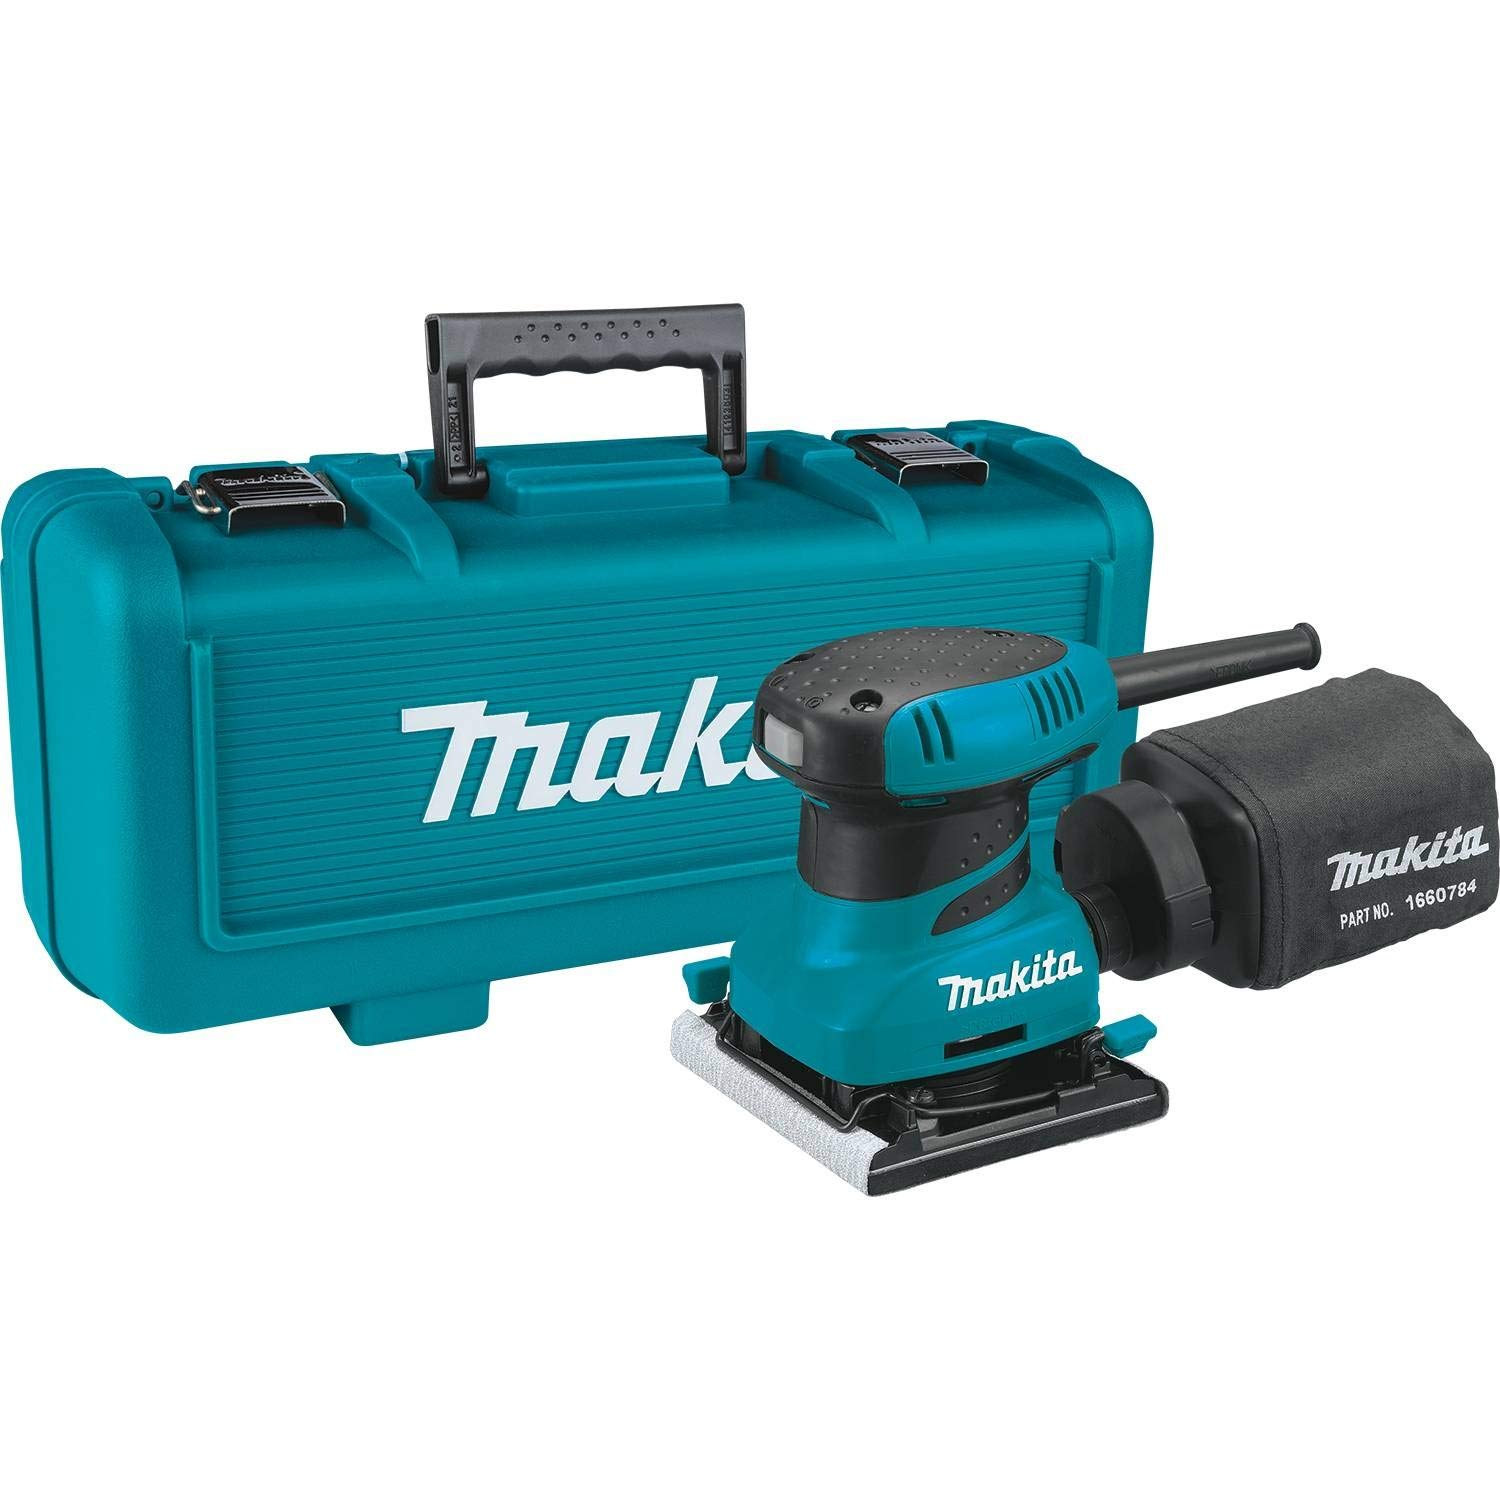 3. Makita BO4556K Palm-Sander